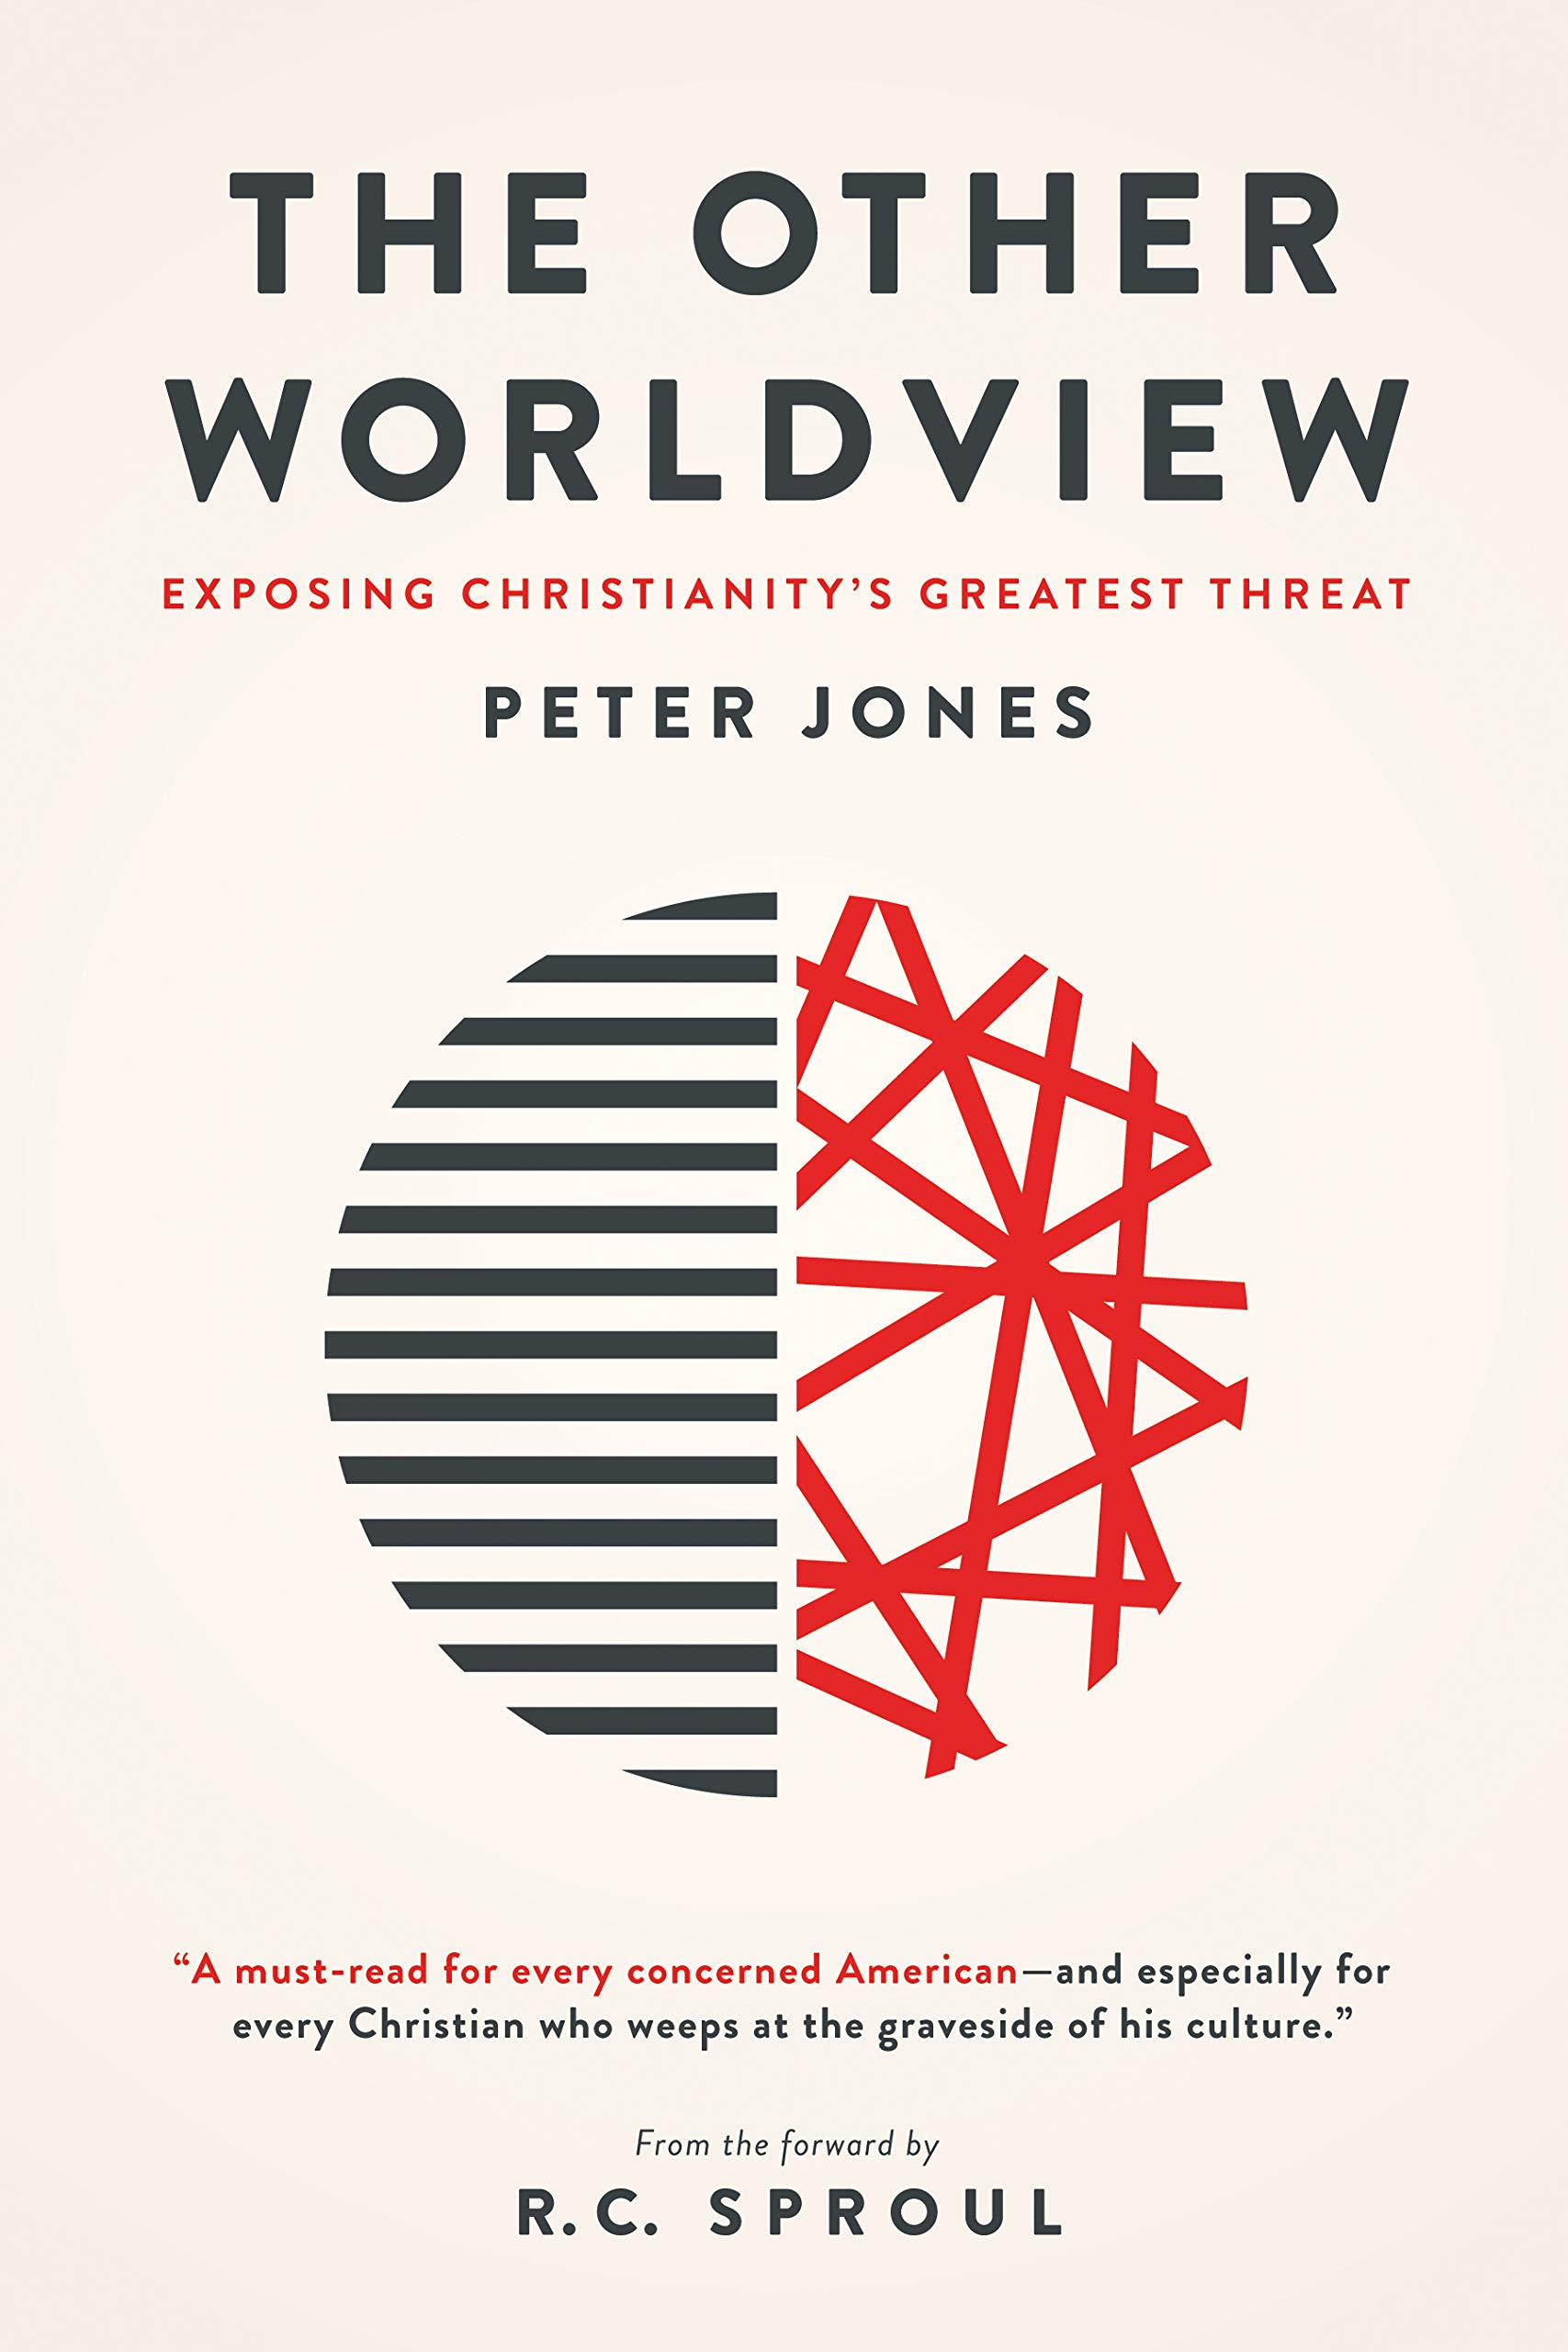 The Other Worldview: Exposing Christianity's Greatest Threat: Jones, Peter:  9781577996224: Amazon.com: Books